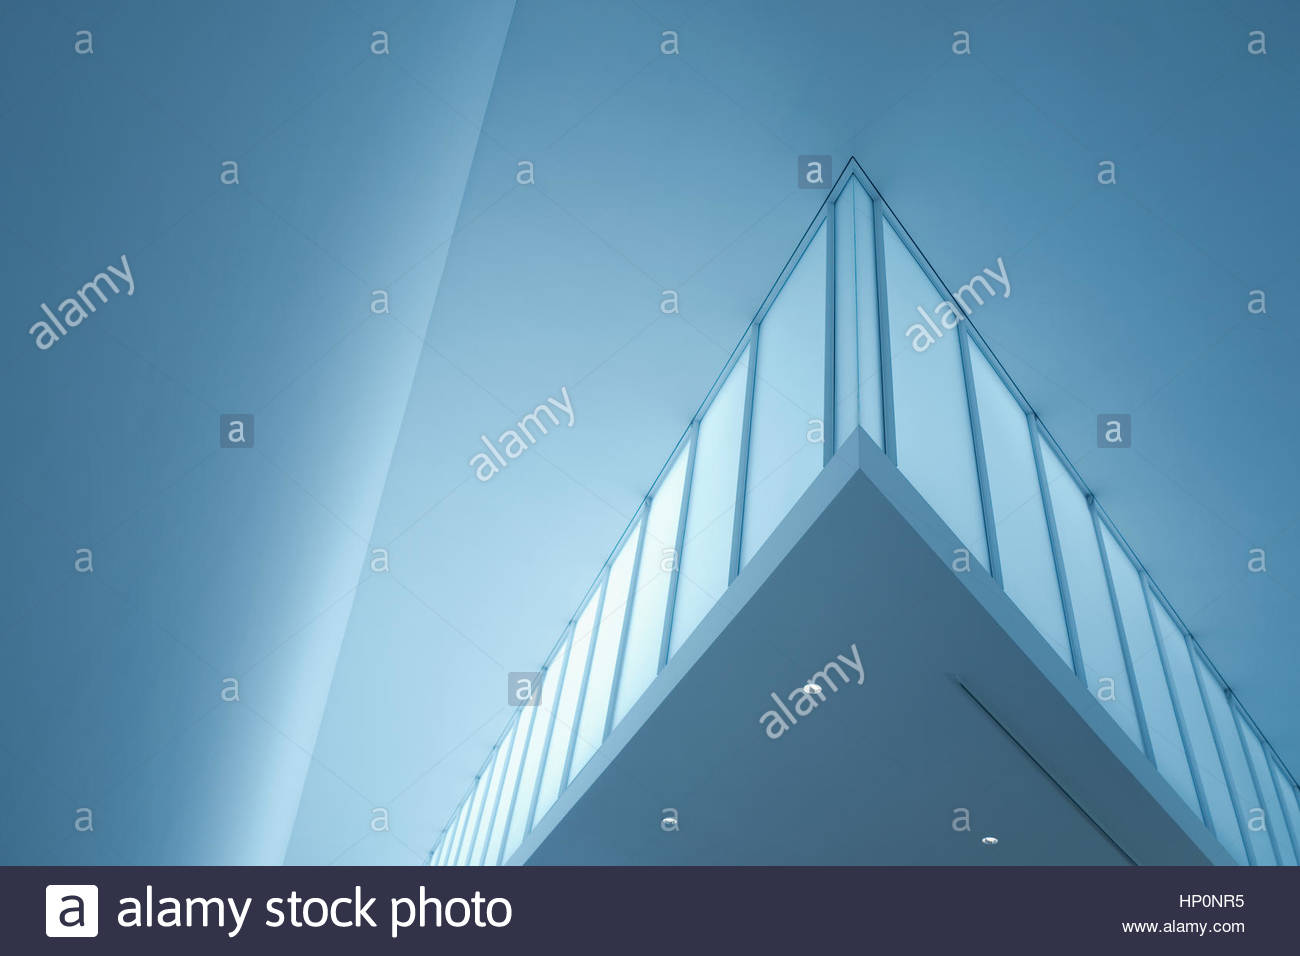 Modern architecture interior glass gallery angular - Stock Image